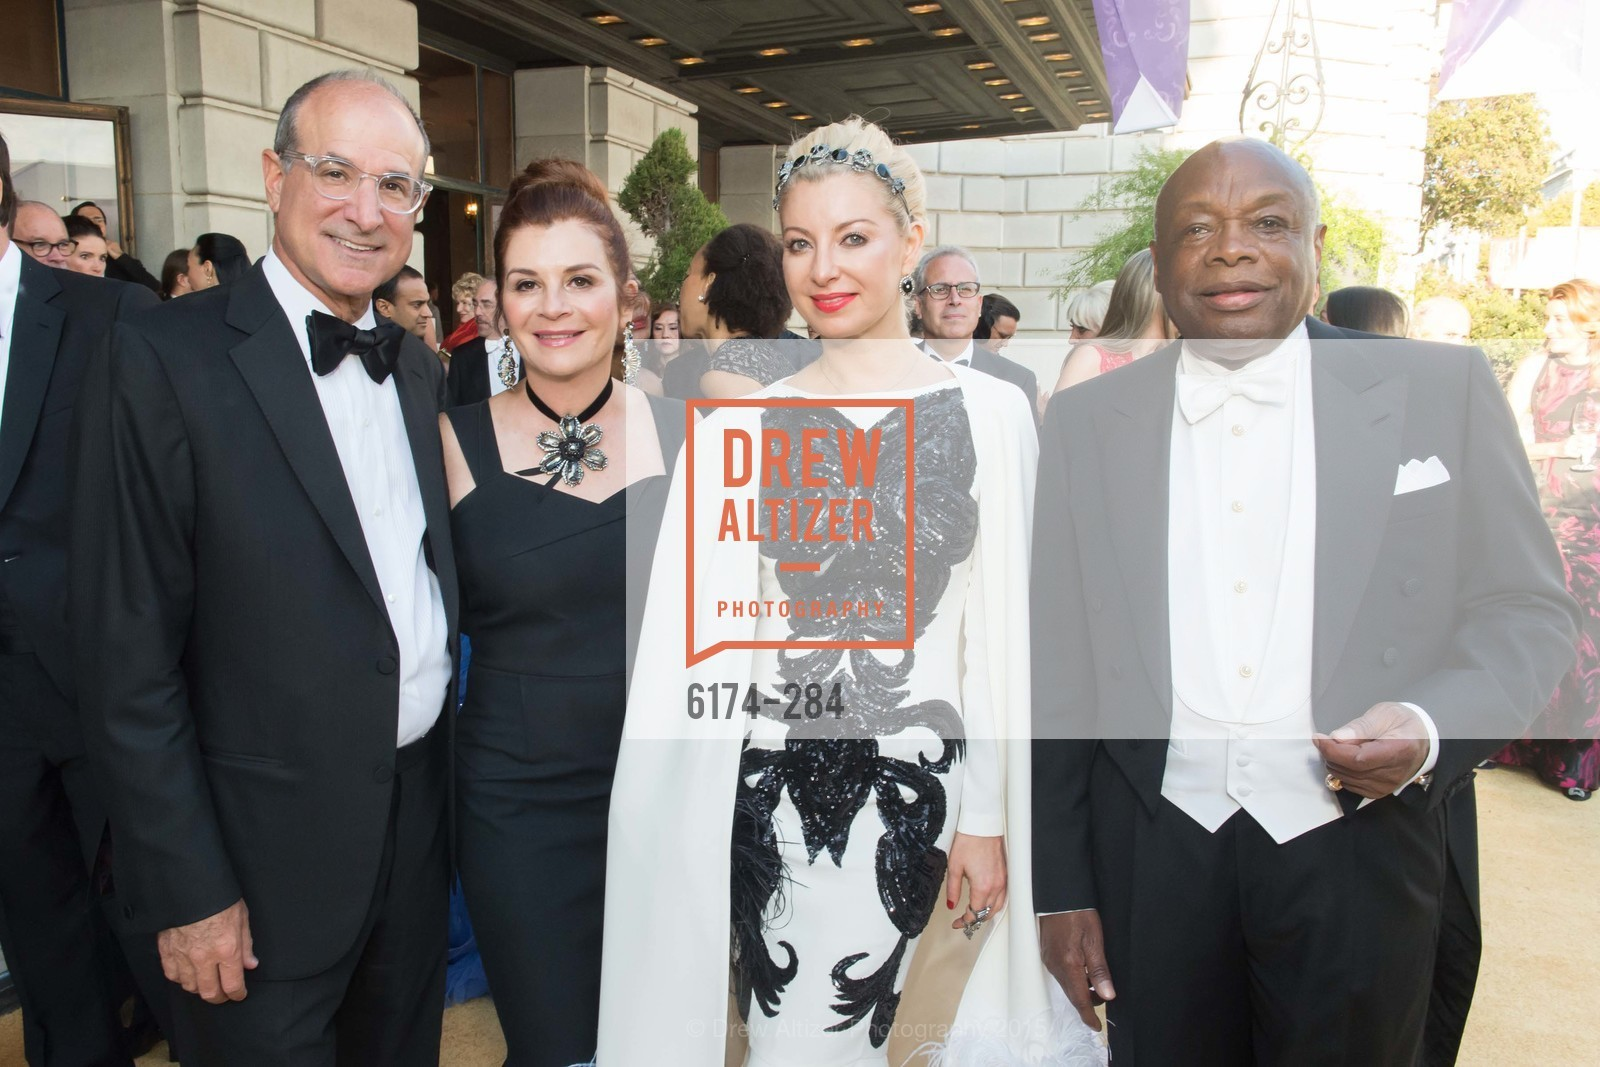 Victor Makras, Farah Makras, Sonya Molodetskaya, Willie Brown, Opera Ball 2015: Moonlight & Music, War Memorial Opera House. 301 Van Ness Ave, September 11th, 2015,Drew Altizer, Drew Altizer Photography, full-service event agency, private events, San Francisco photographer, photographer California